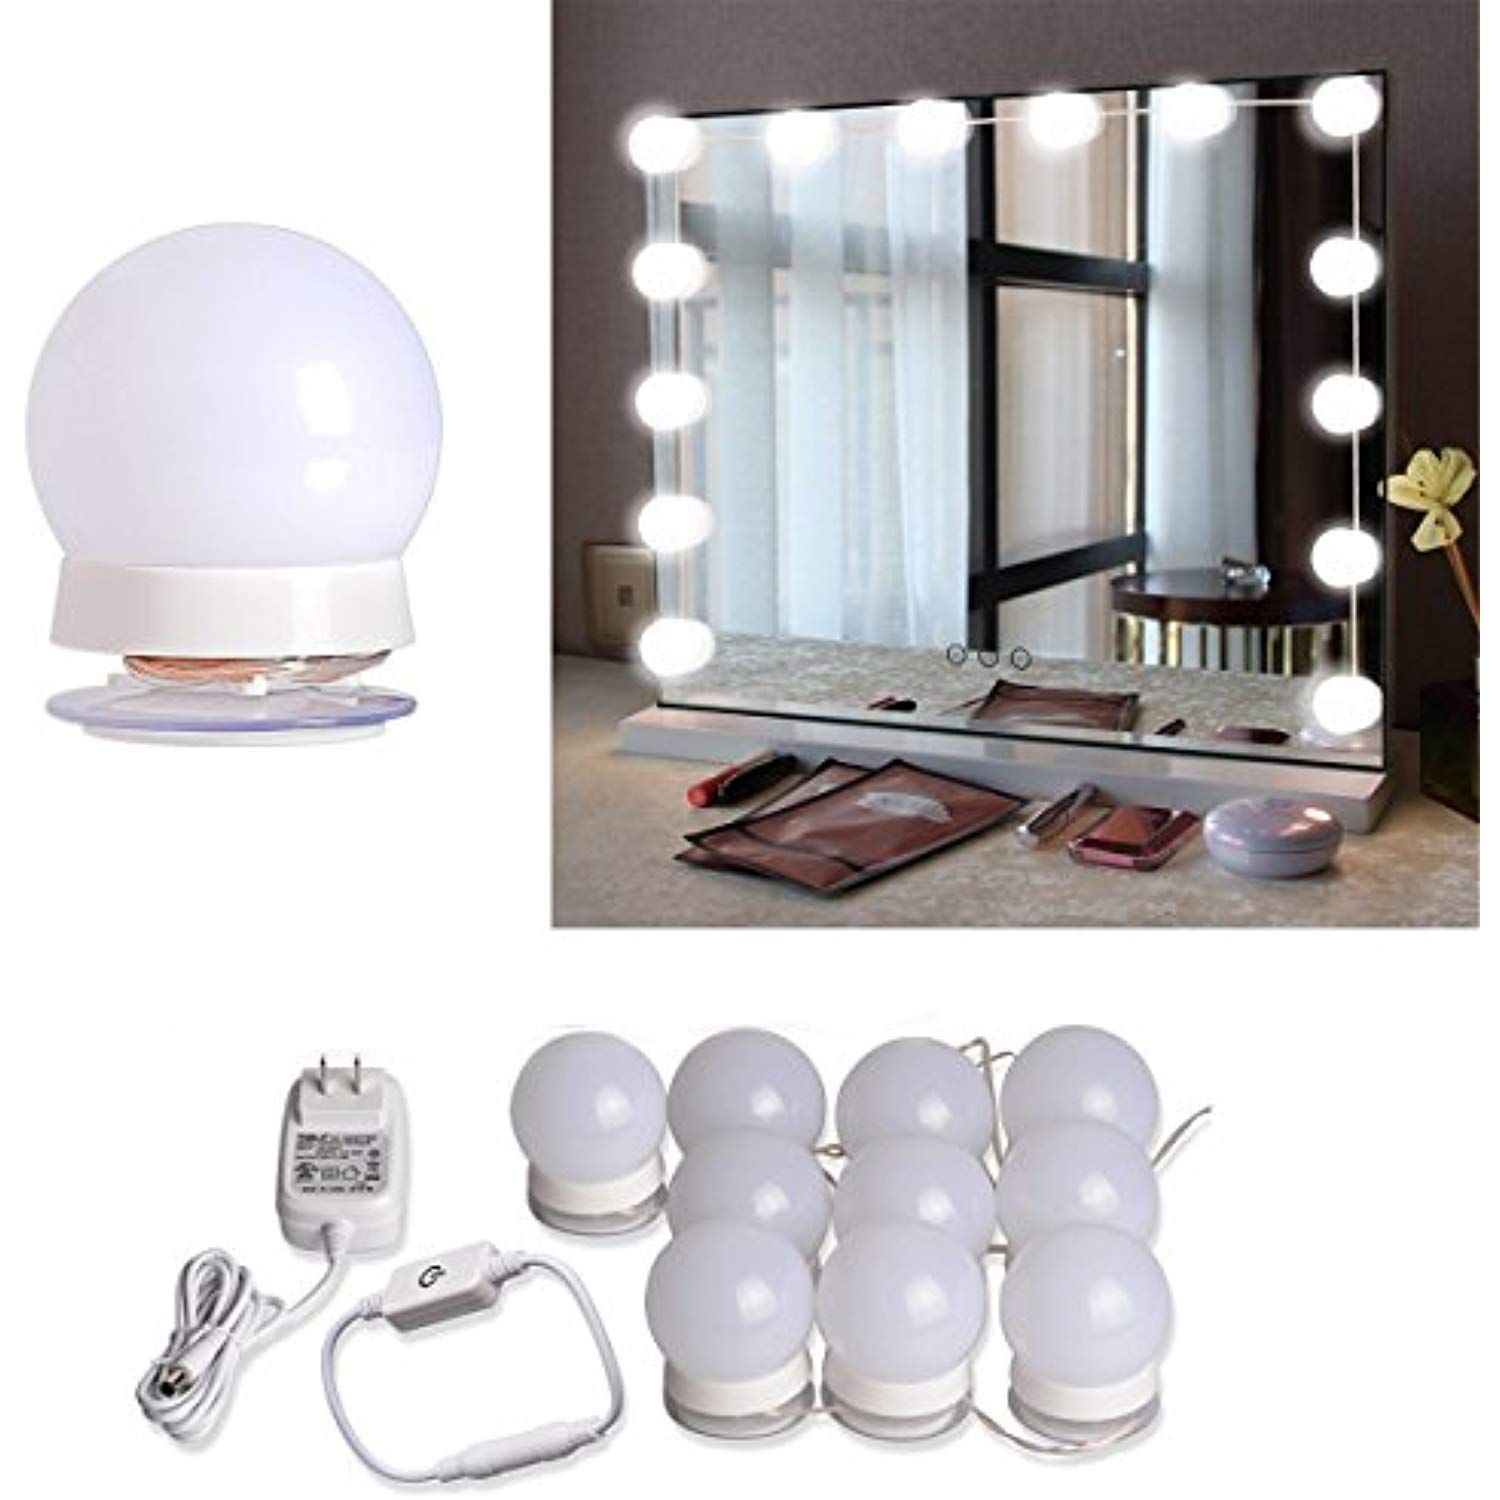 Hollywood Style Led Vanity Mirror Lights Kit With 10 Dimmable Led